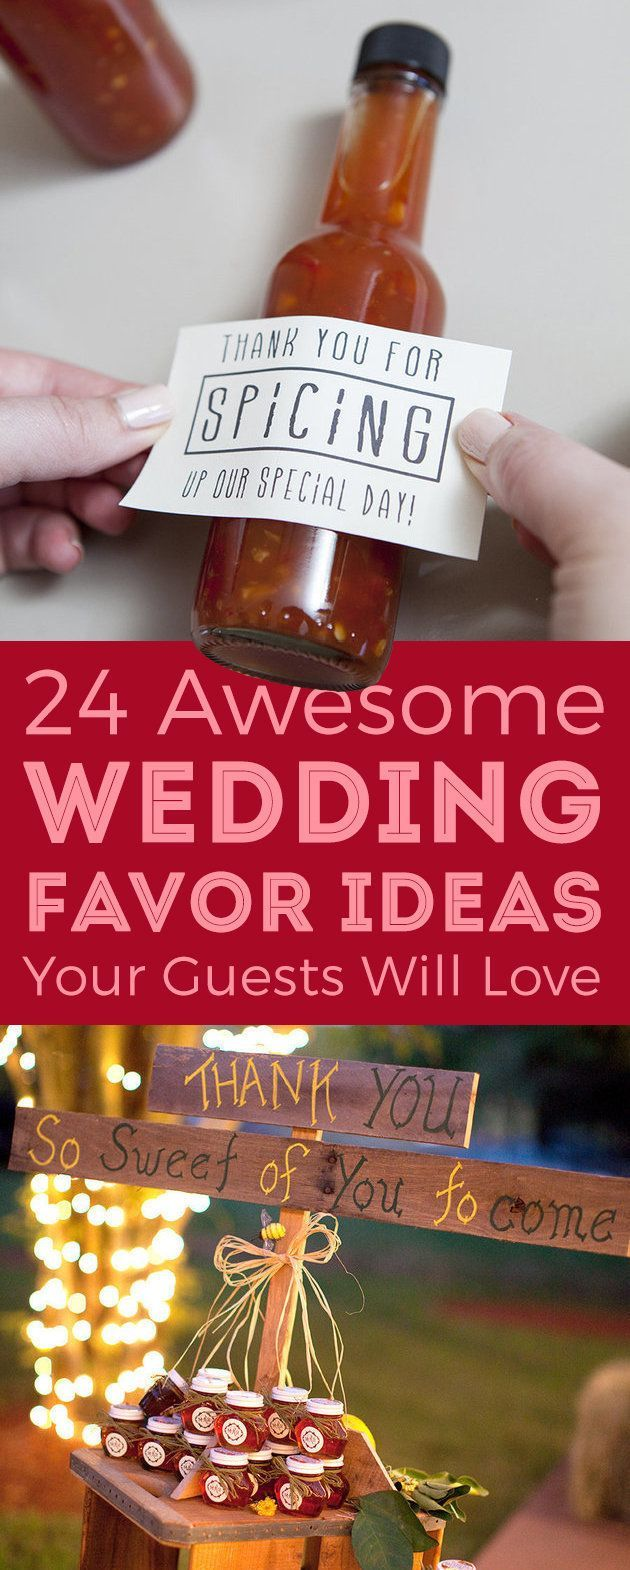 Original Wedding Presents Uk : about Unique Wedding Favors on Pinterest Wedding Favours, Wedding ...